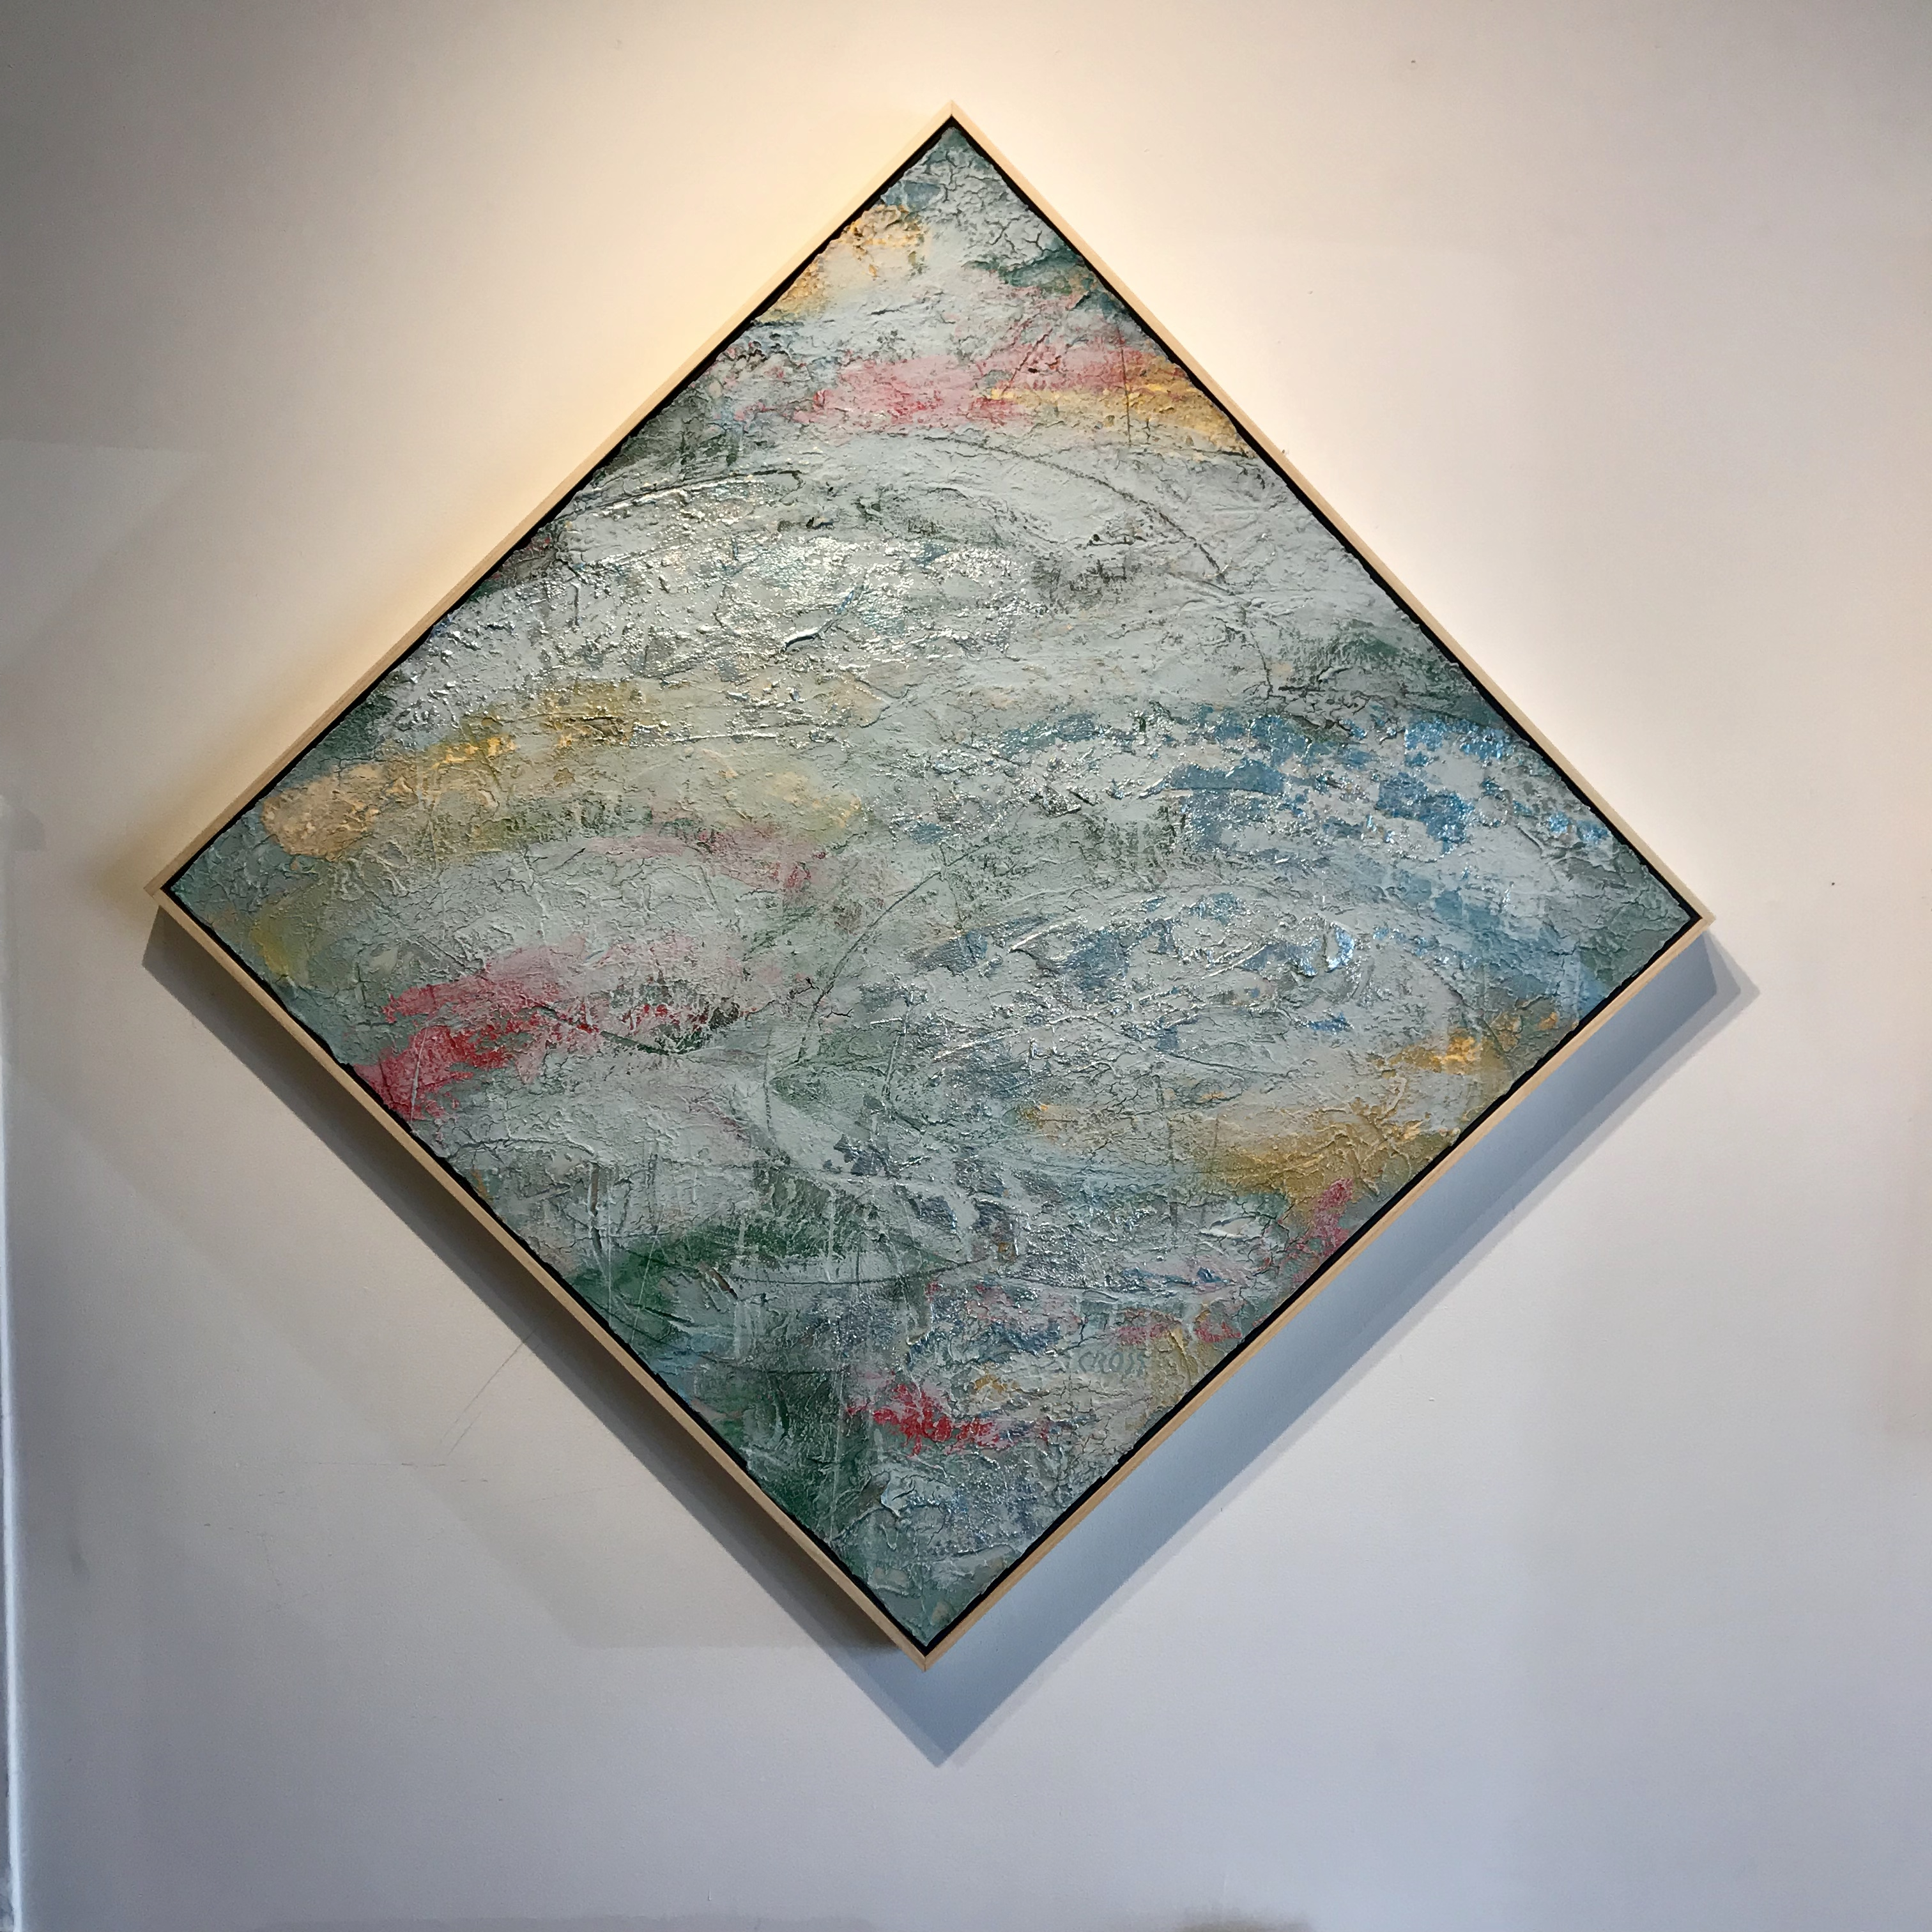 DUTCHE MODERN, acrylic, pastel, and silver leaf on canvas, 36 x 36 IN, 51 x 51 IN on axis